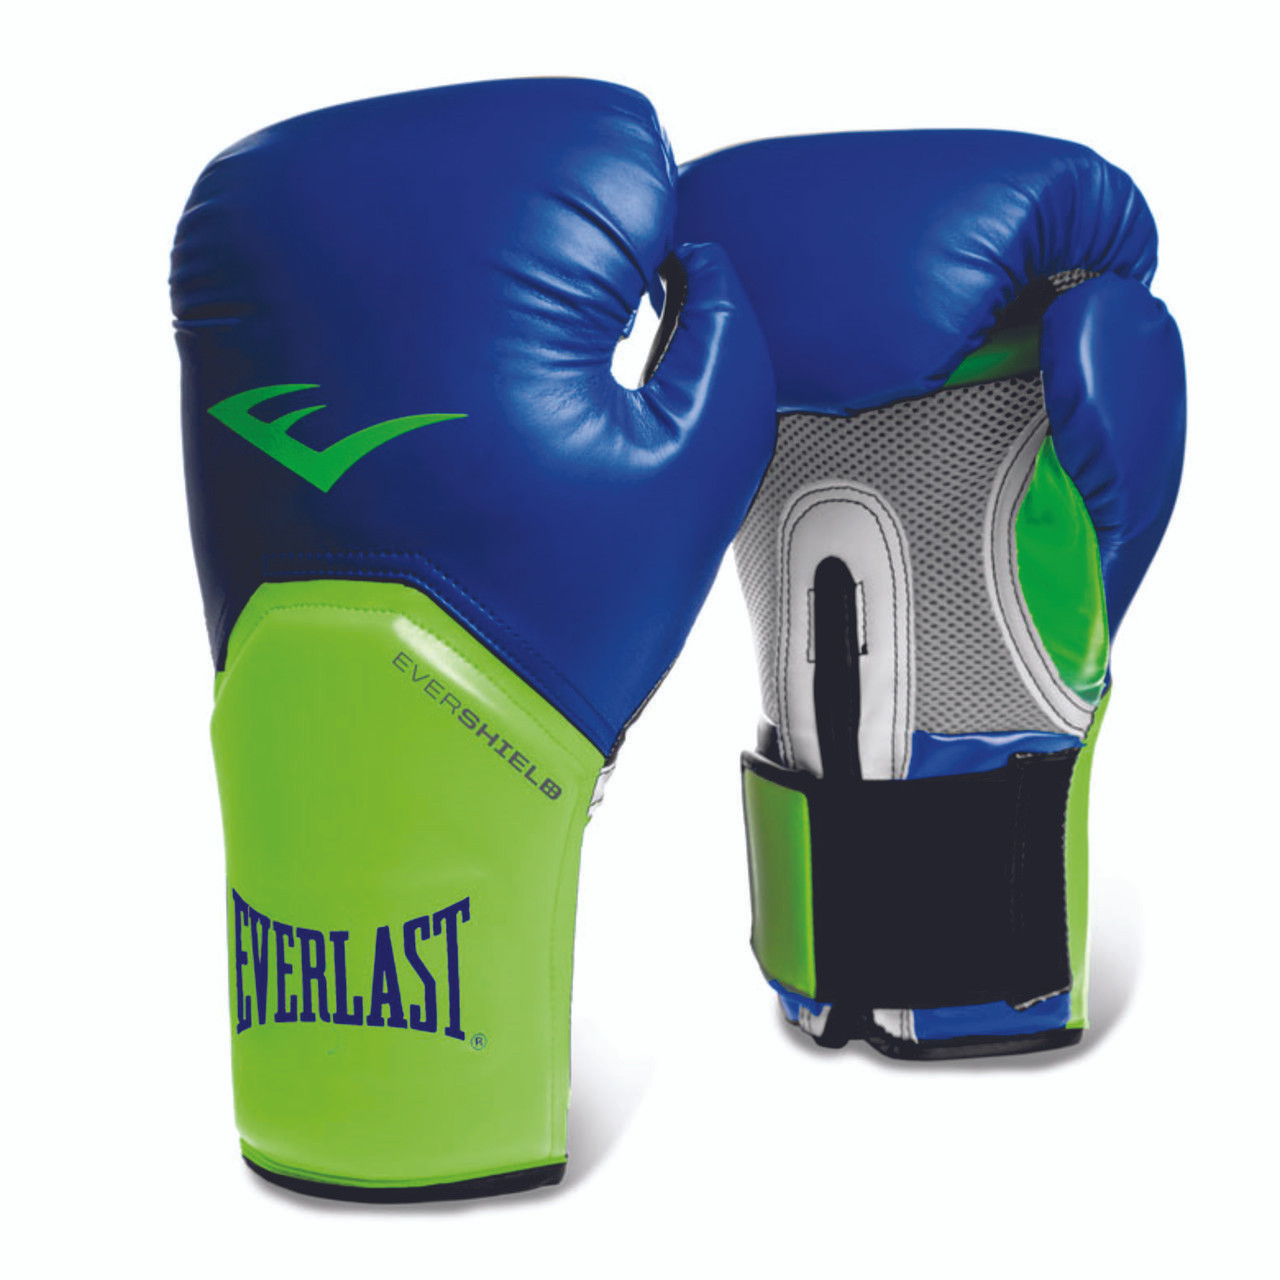 96d415f96 NEW! EVERLAST PRO STYLE ELITE TRAINING GLOVES 16oz blue lime green ...